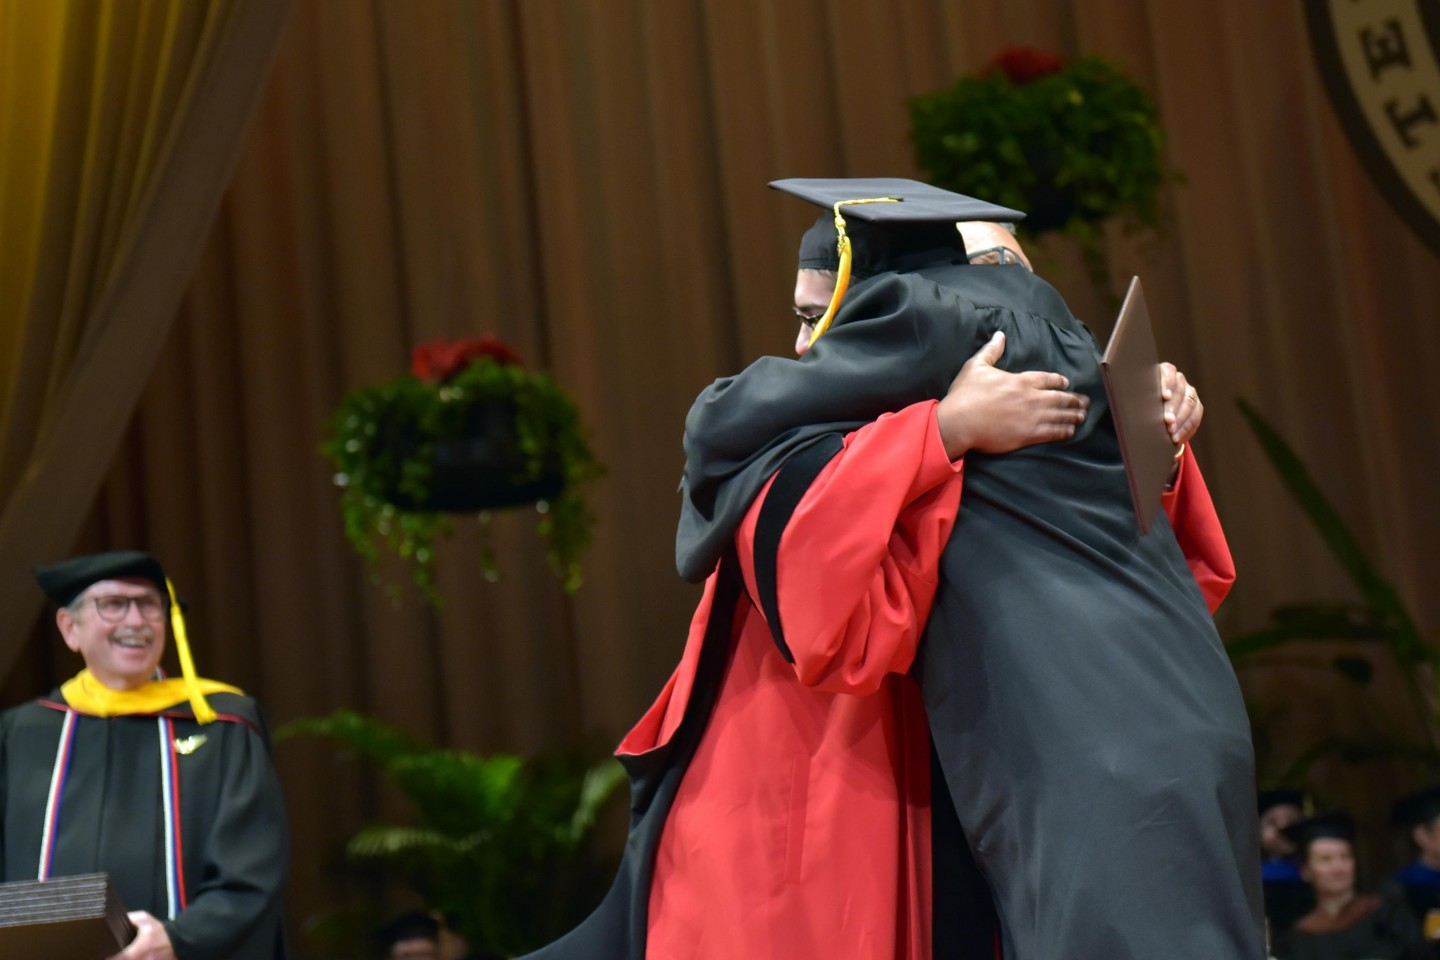 Dr. Edward Montgomery, WMU president, hugs a student at graduation.